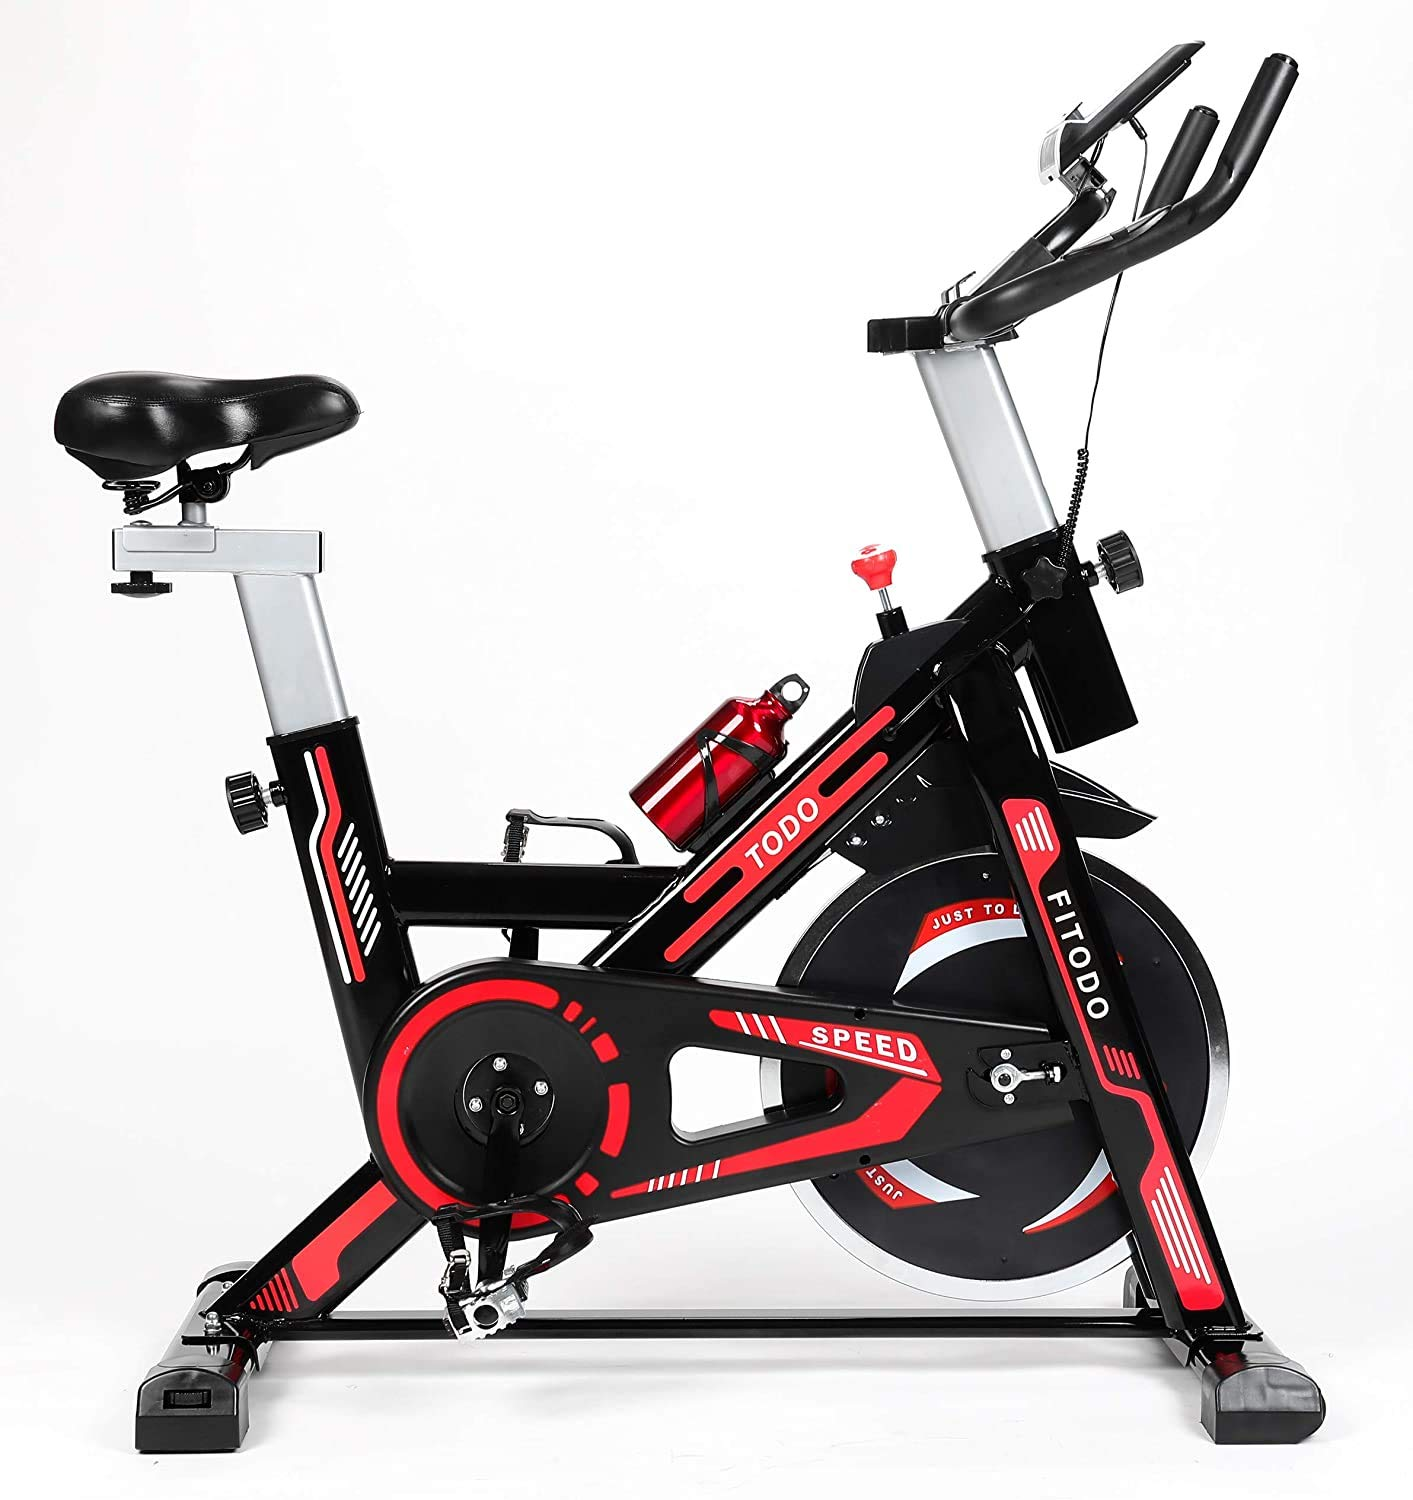 TODO Exercise Bike Stationary Indoor Cardio Training Cycling Bike with LCD Monitor